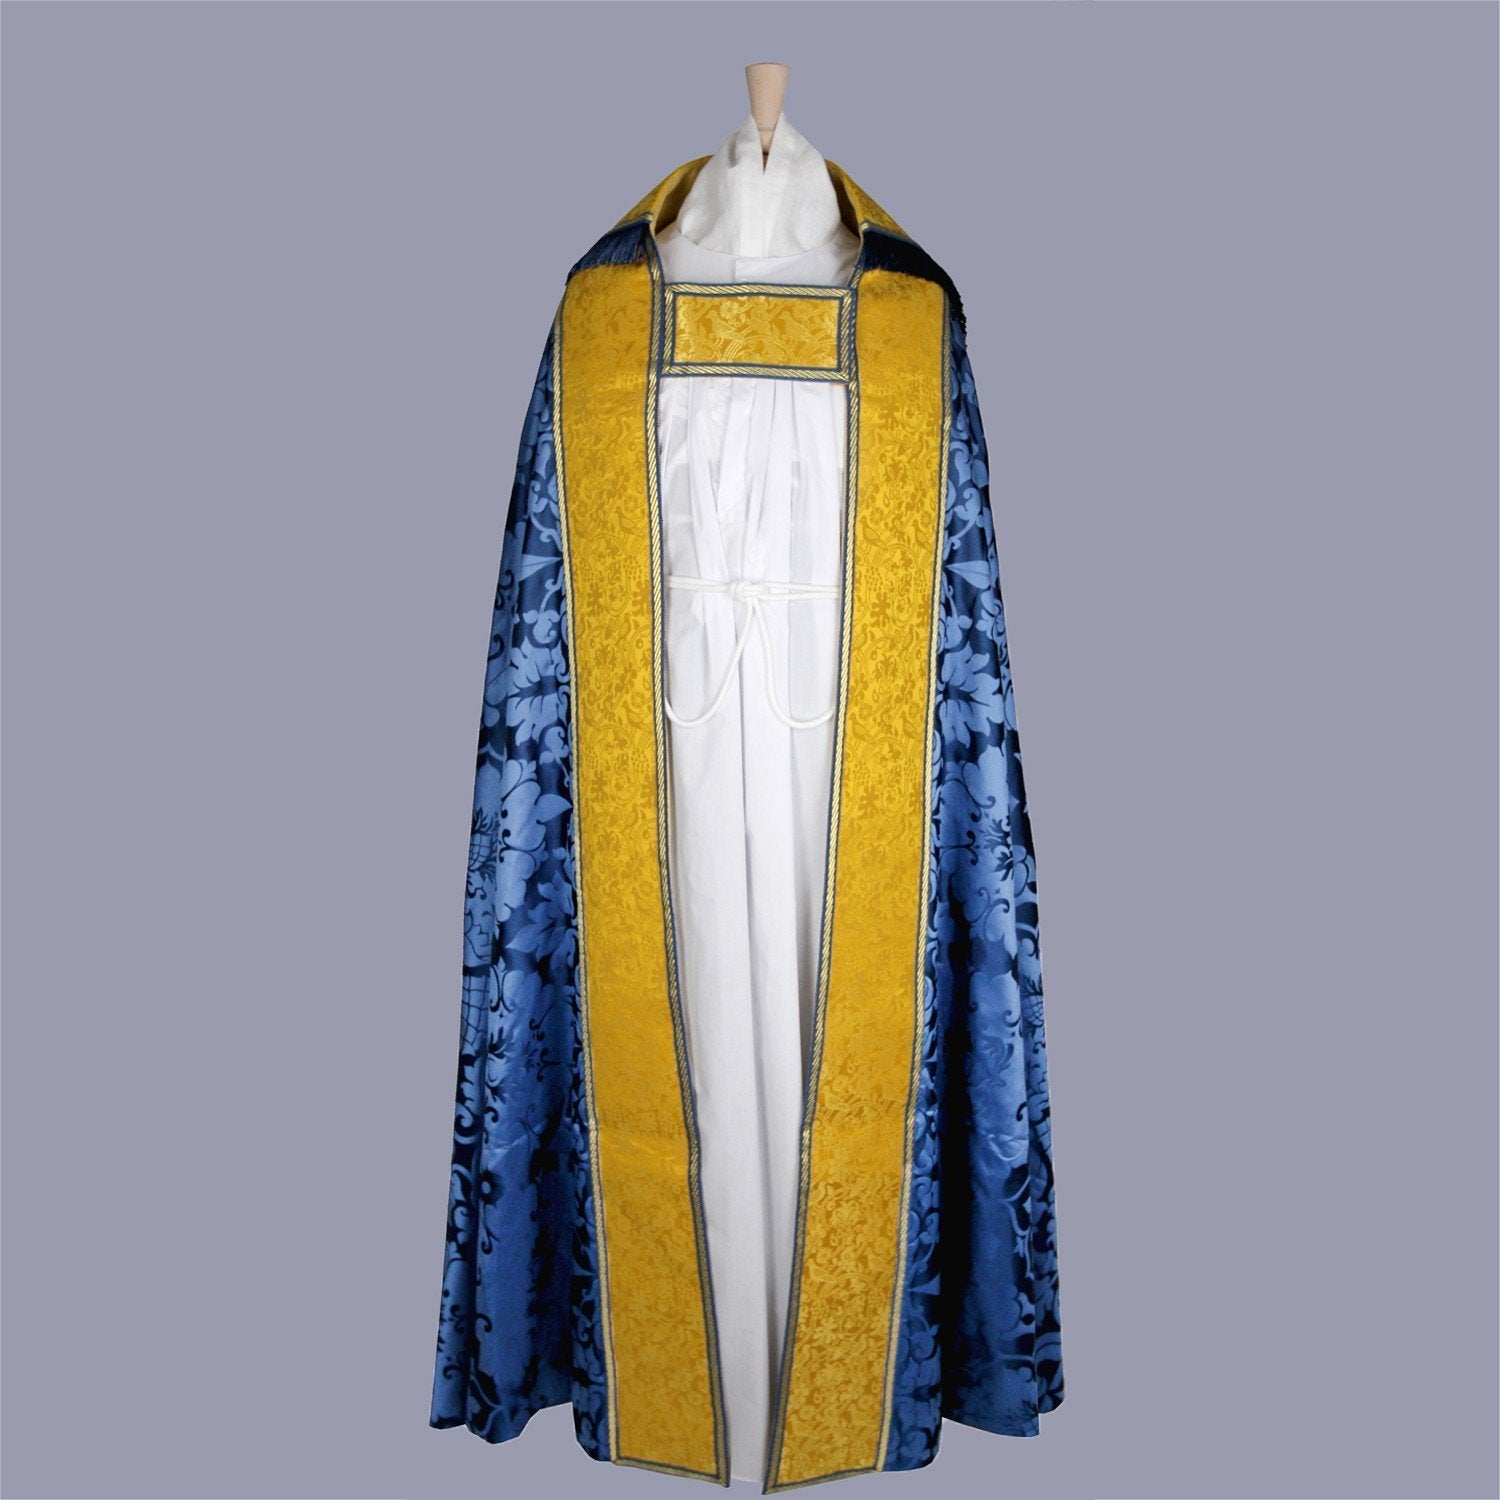 Embroidered Cathedral Cope in Blue Bellini - Watts & Co. (international)